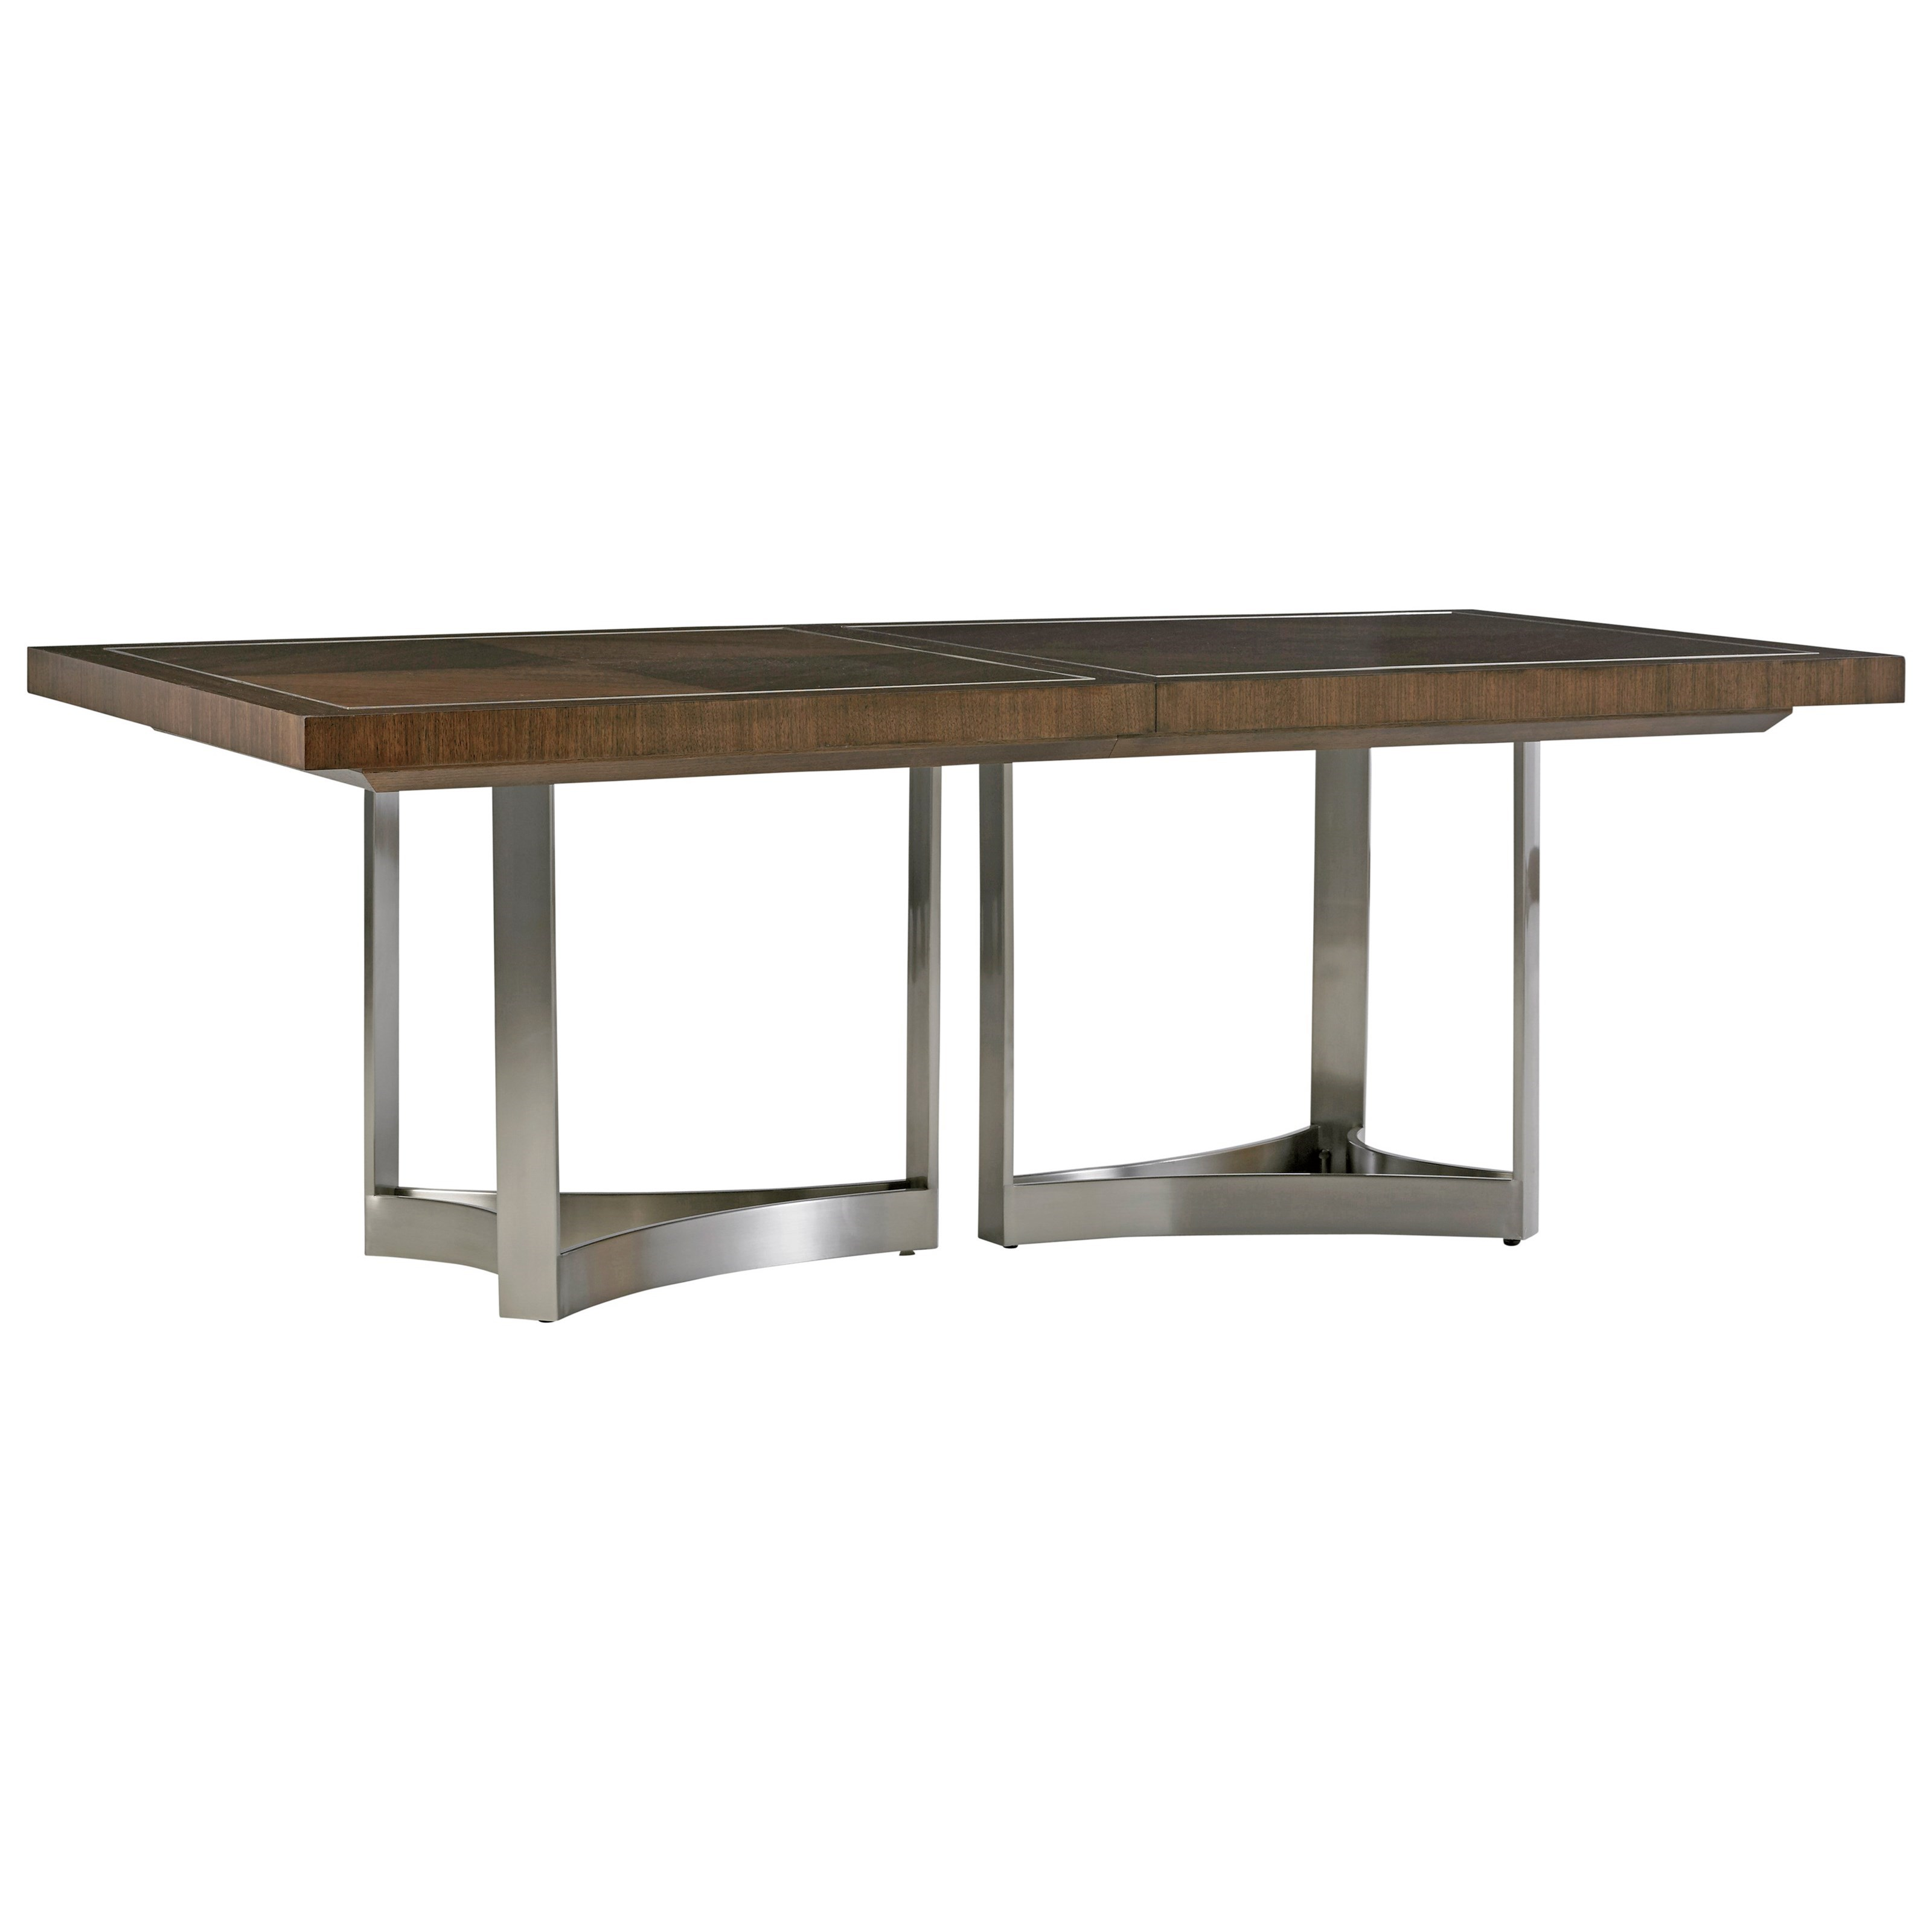 MacArthur Park Beverly Place Rectangular Dining Table by Lexington at Baer's Furniture